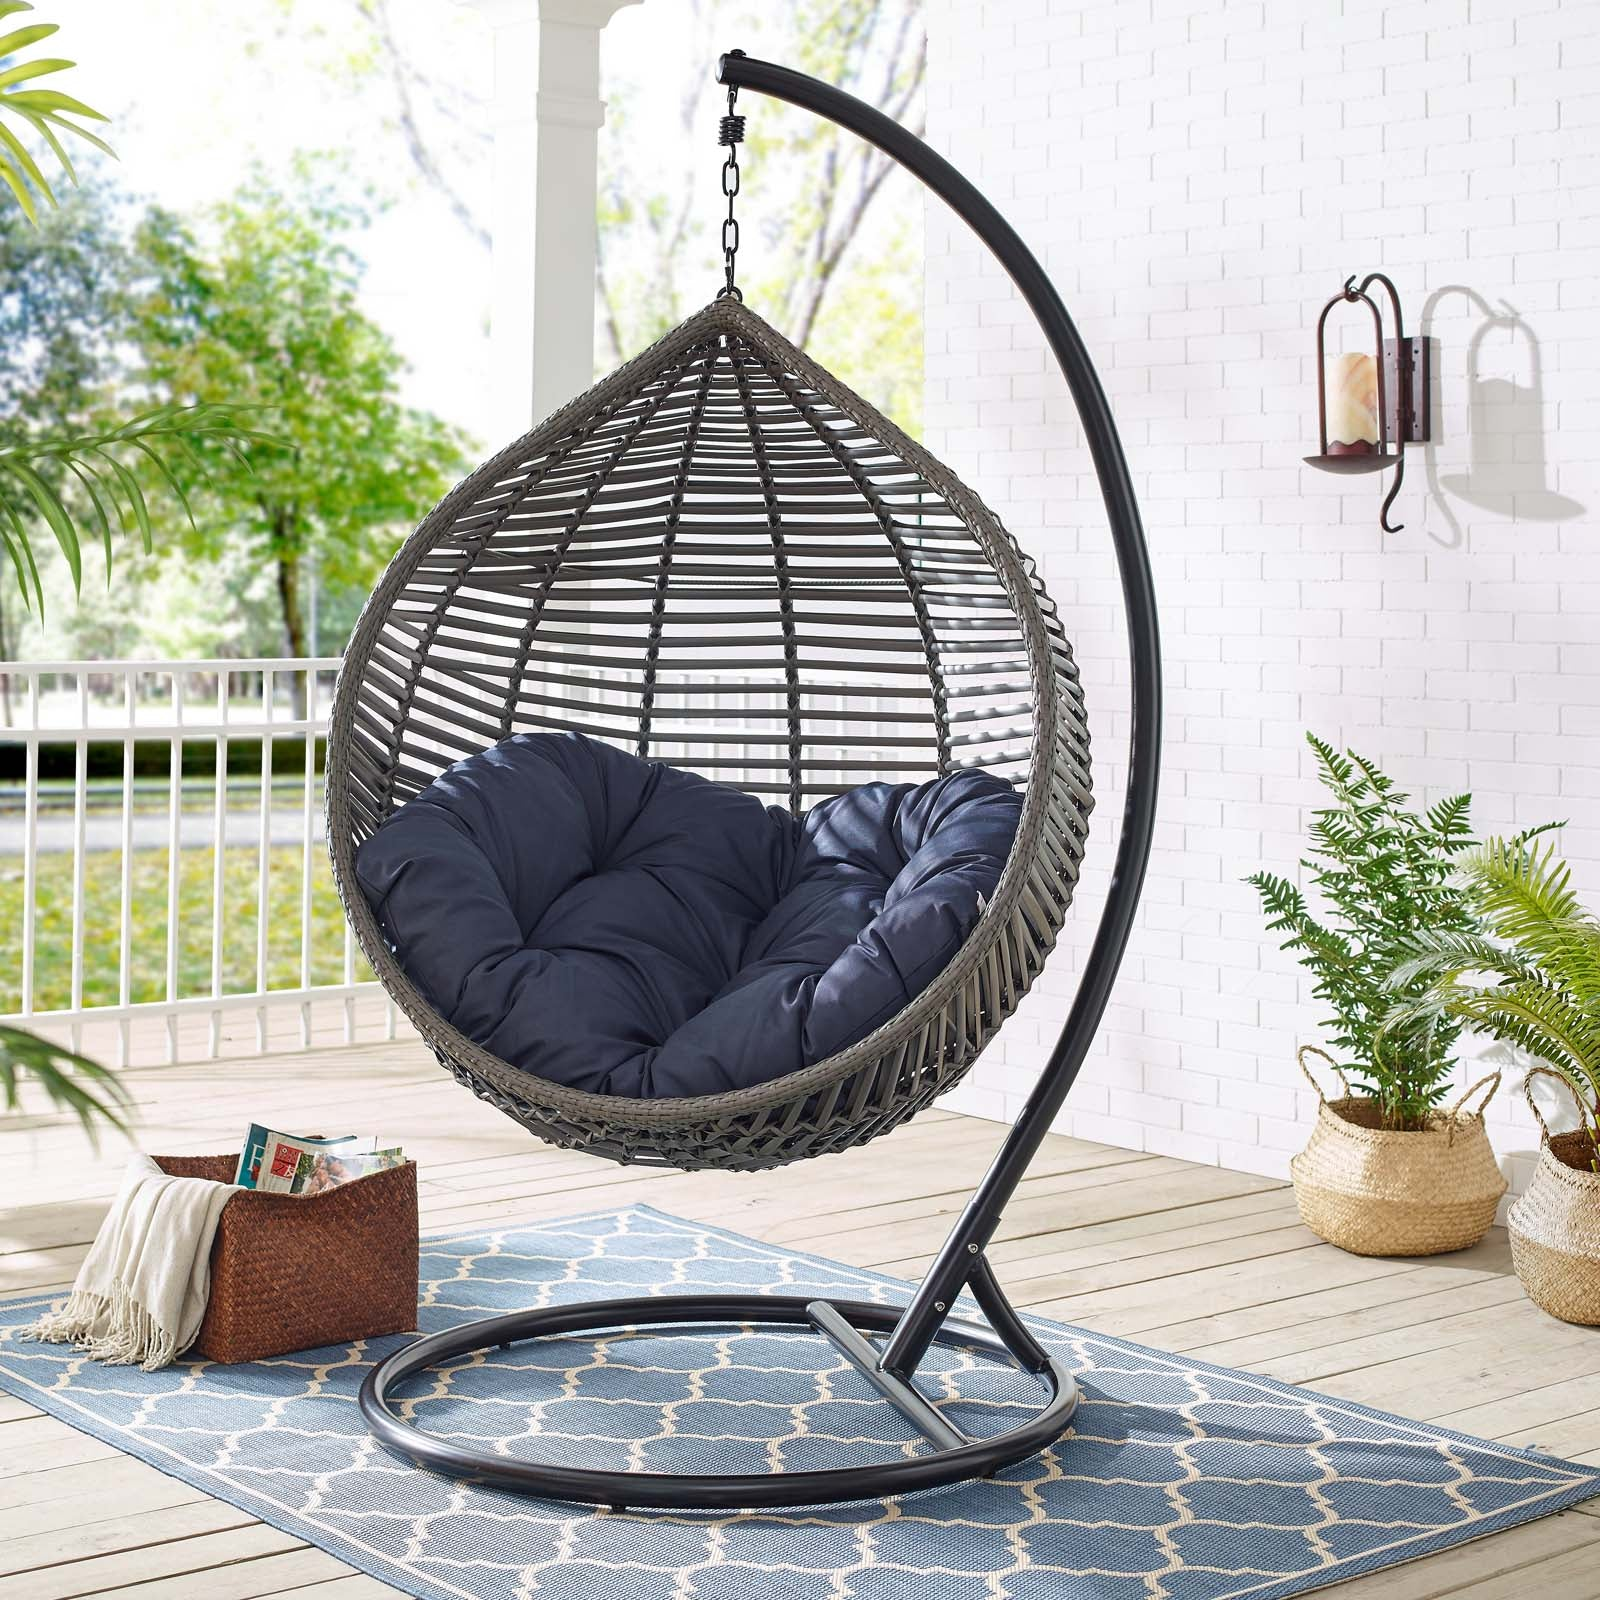 Tear Drop Outdoor Patio Swing Chair